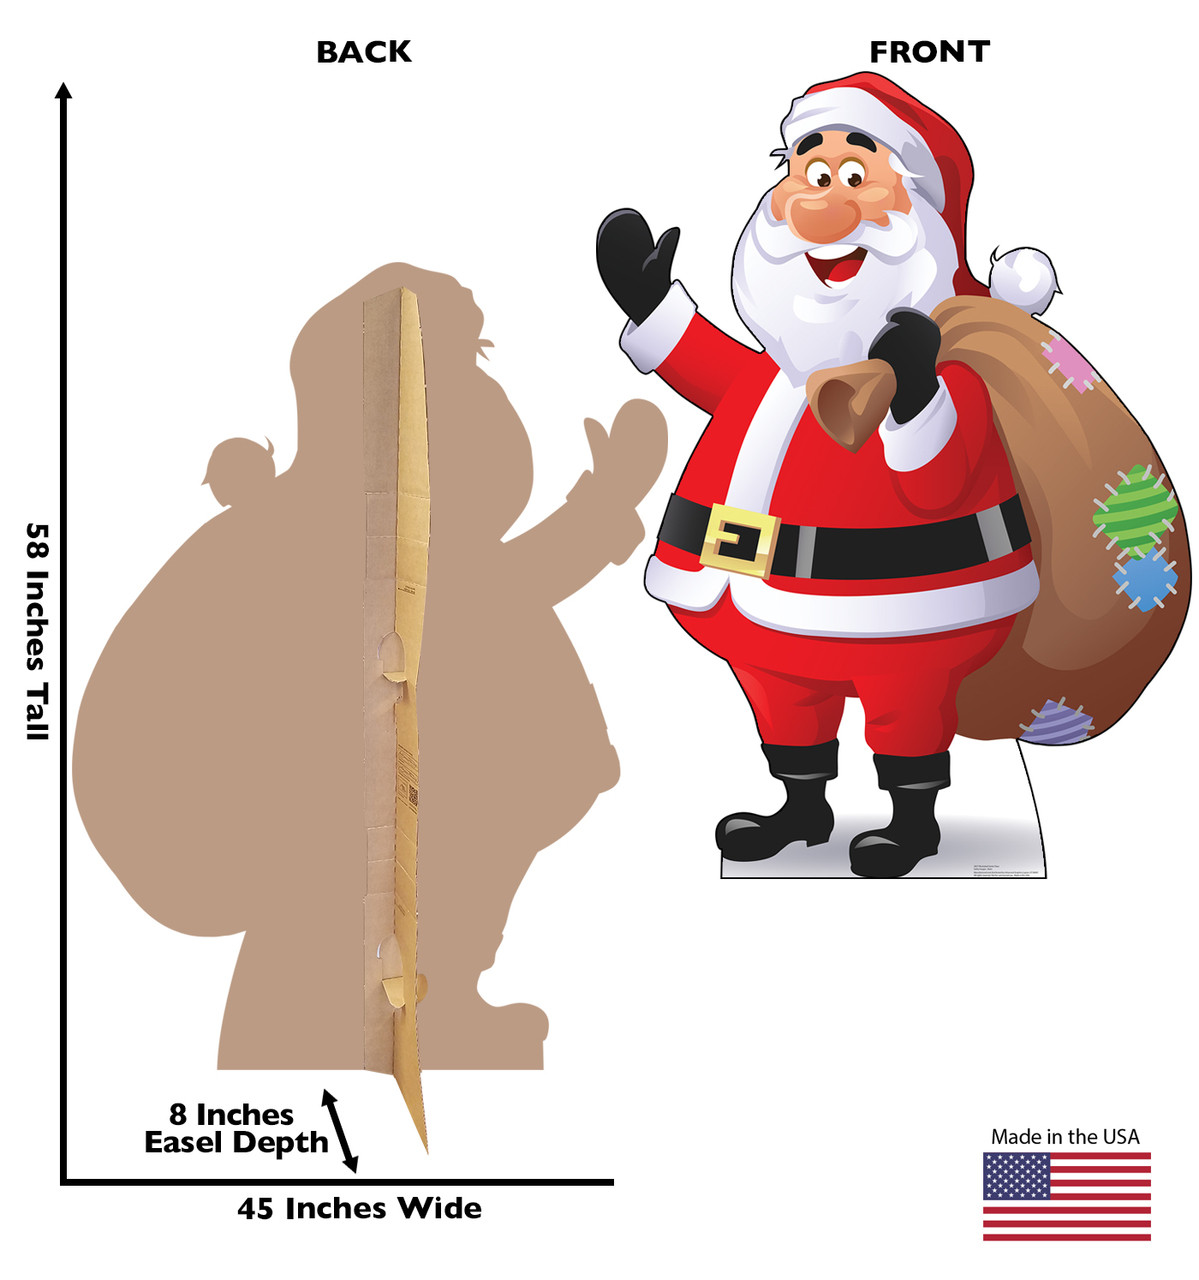 Life-size cardboard standee of Illustrated Santa Claus. View of back and front of standee with dimensions.